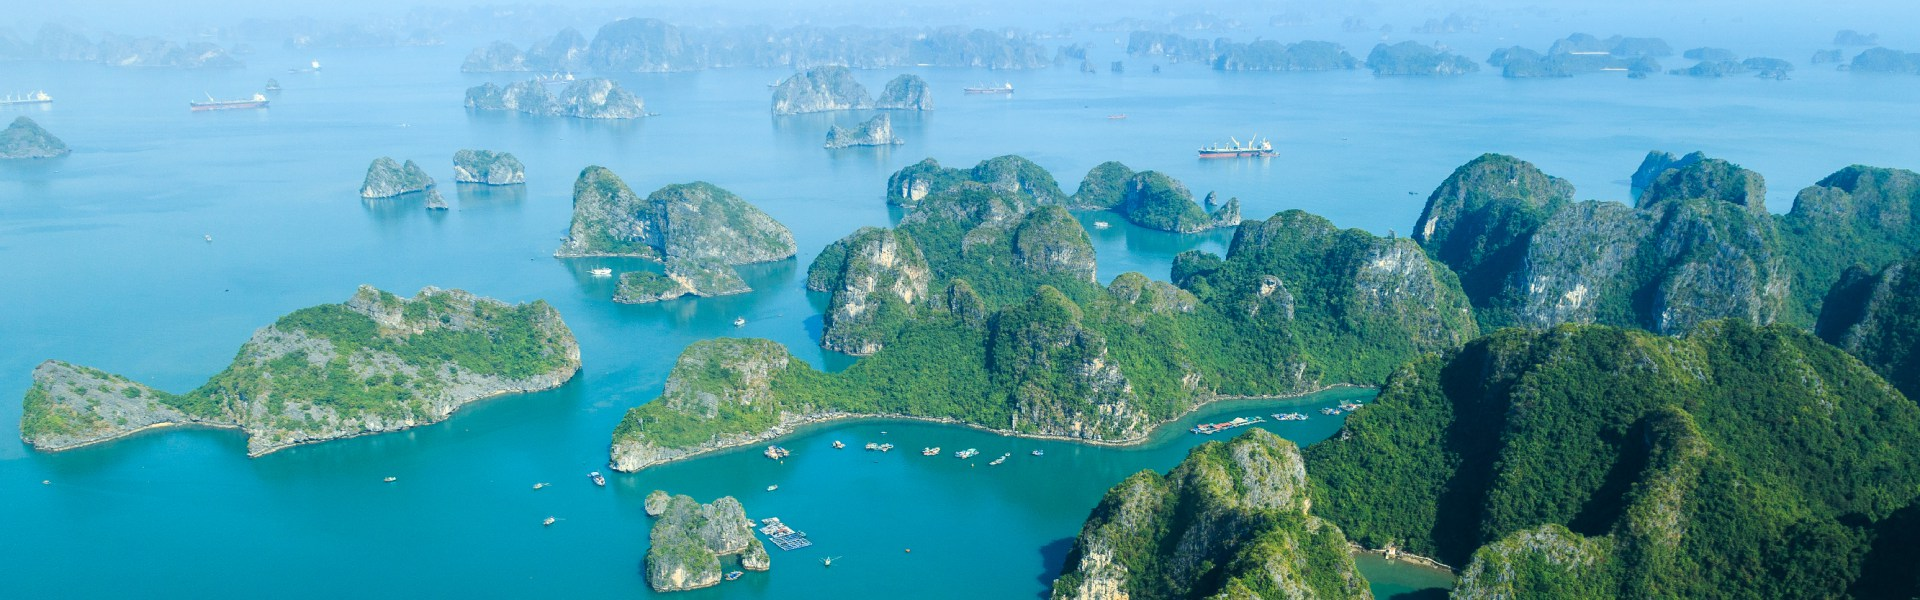 Sightseeing flight over Halong Bay